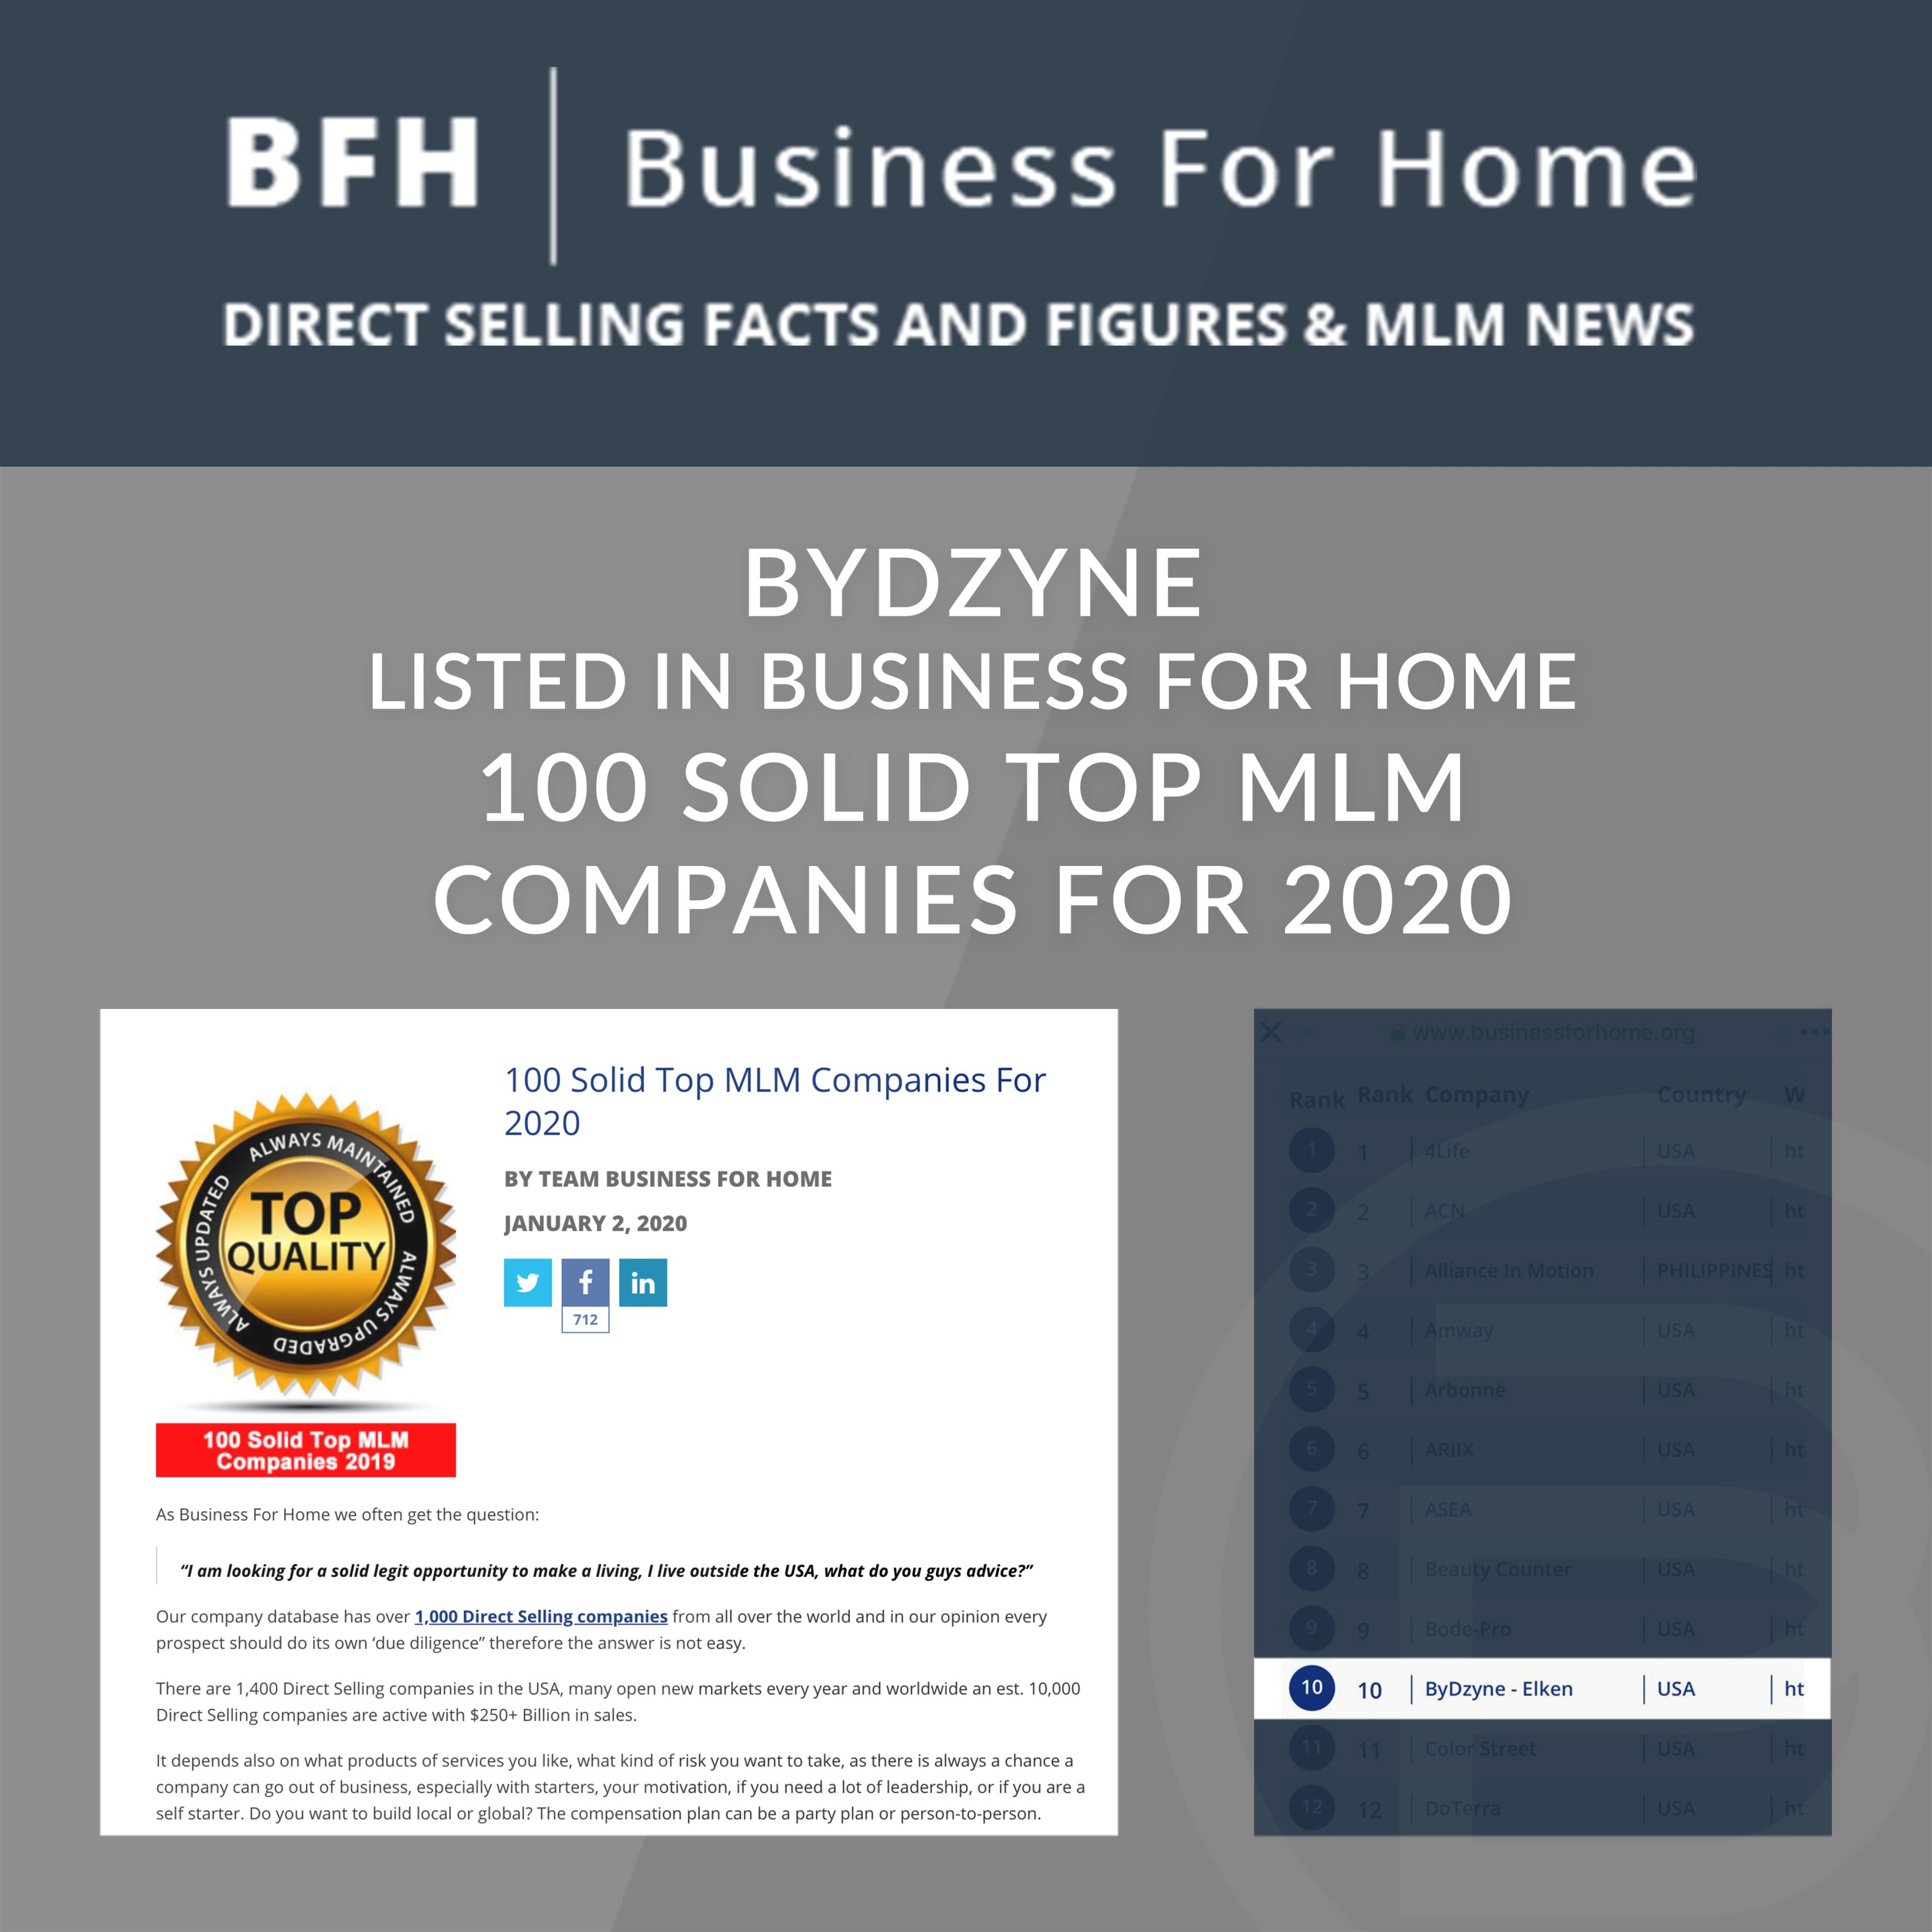 ByDzyne listed in 100 Solid Top MLM Companies for 2020